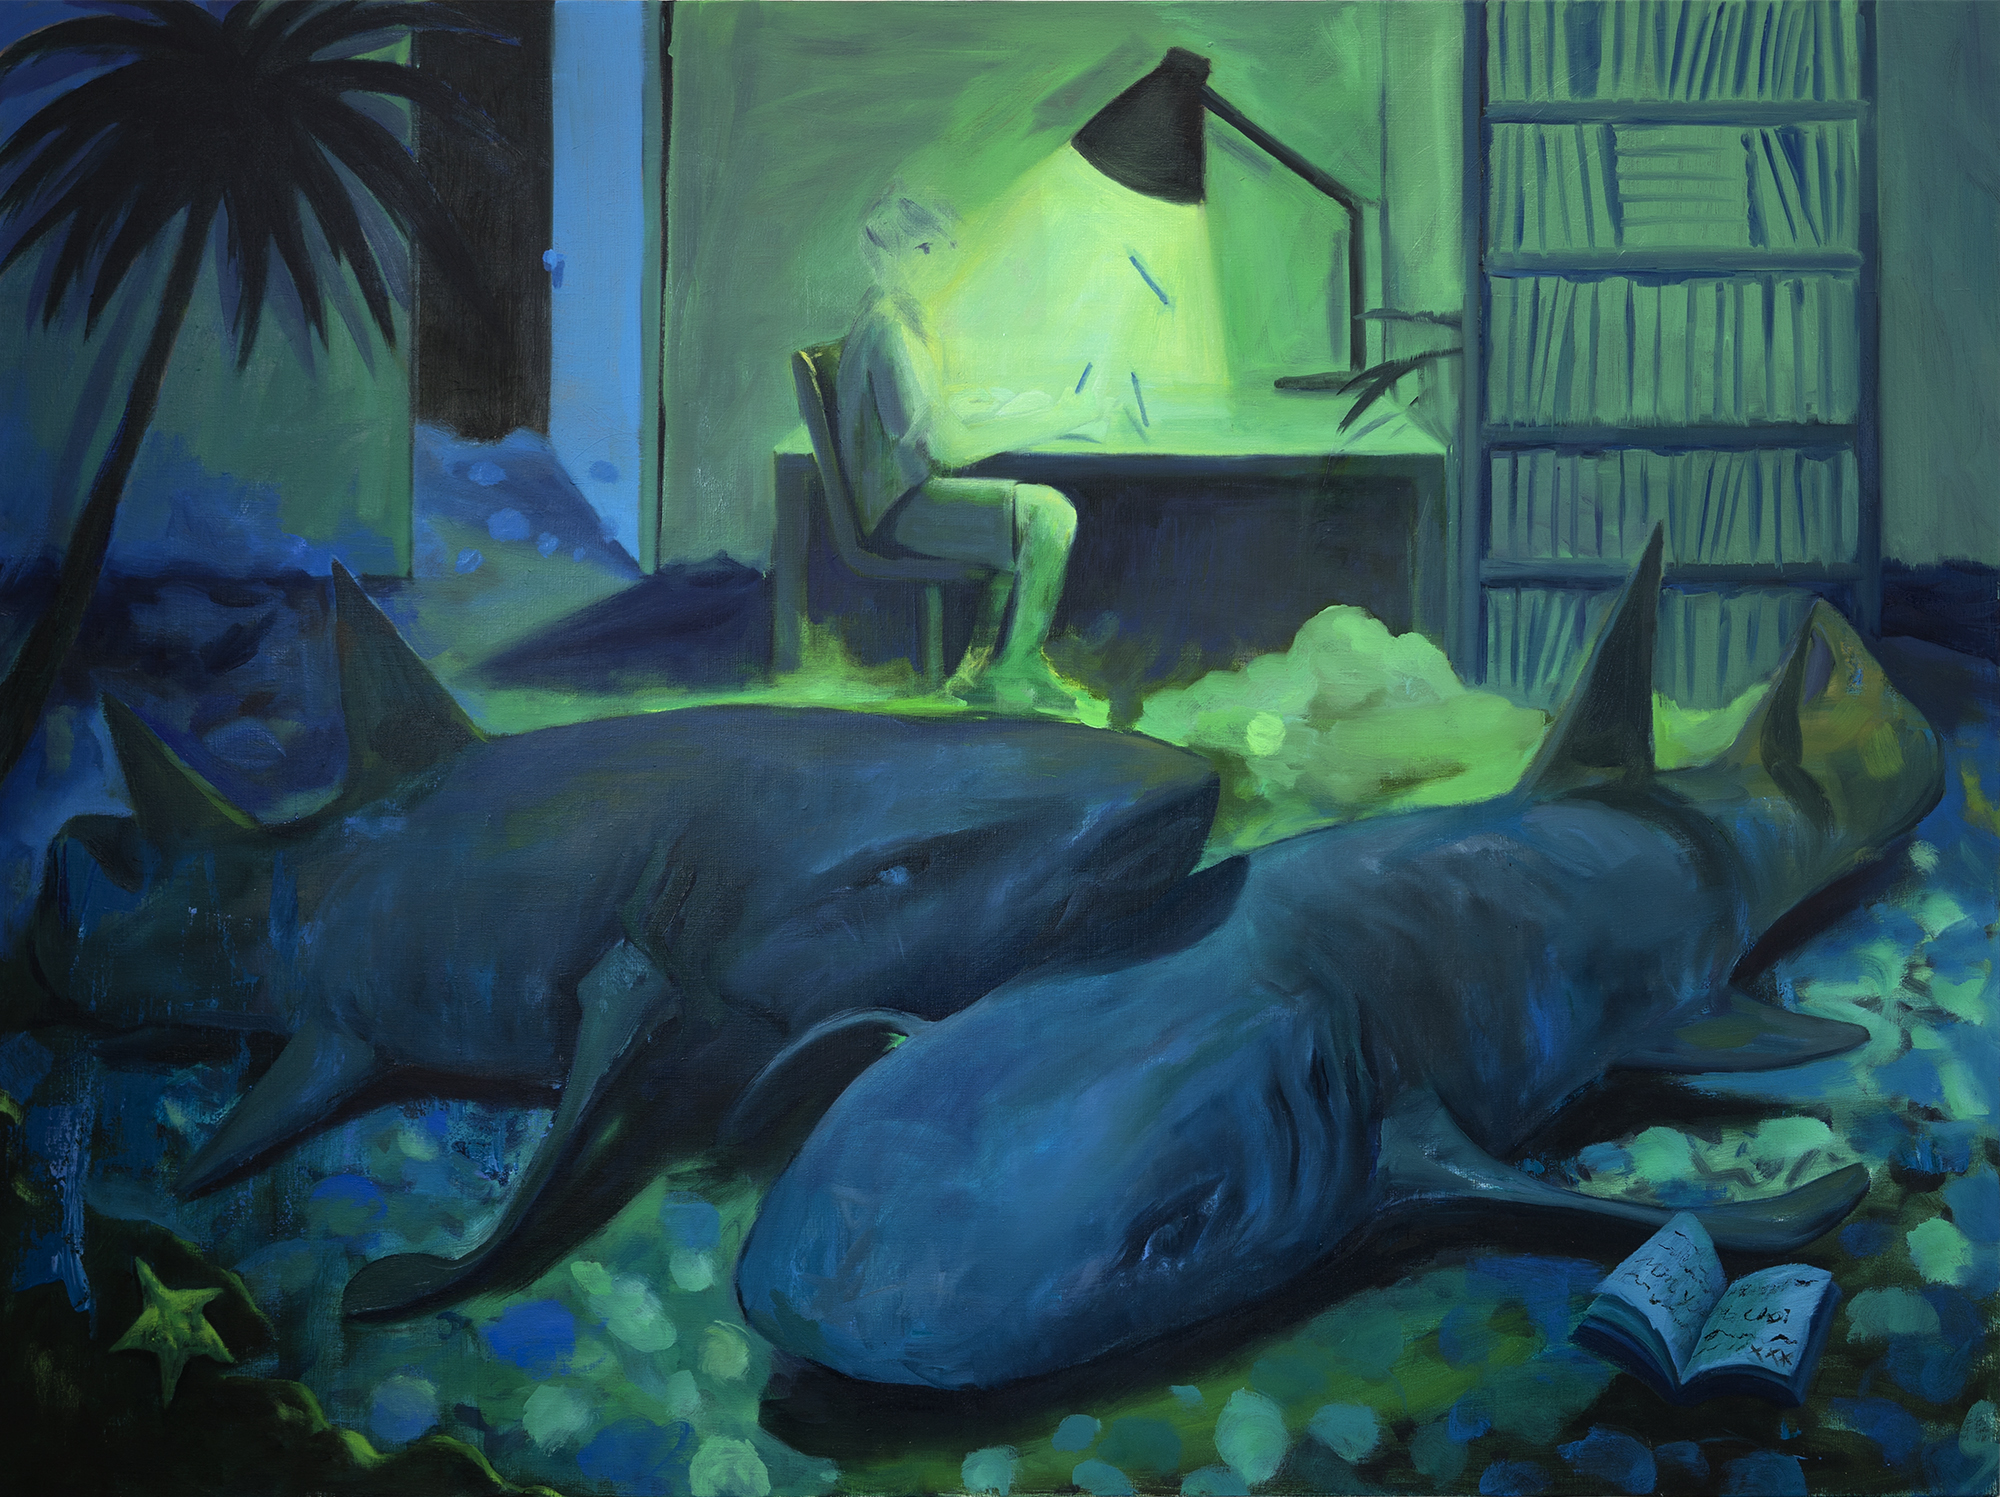 Sleeping Sharks  Oil on linen  120 x 160 cm  2018